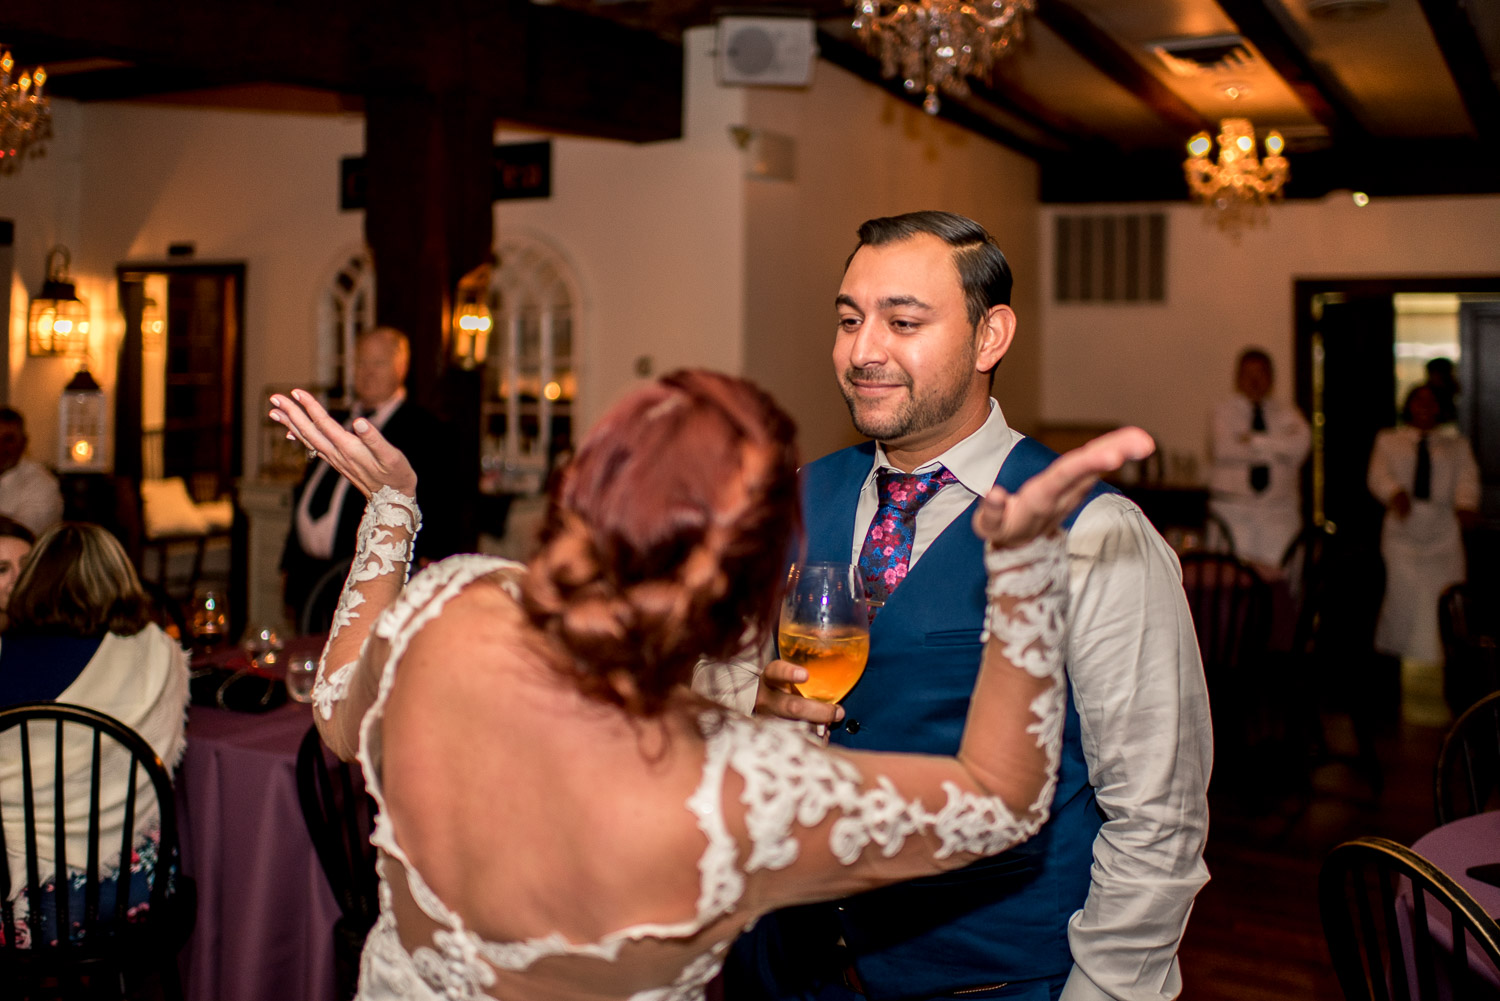 wild dancing at wedding reception